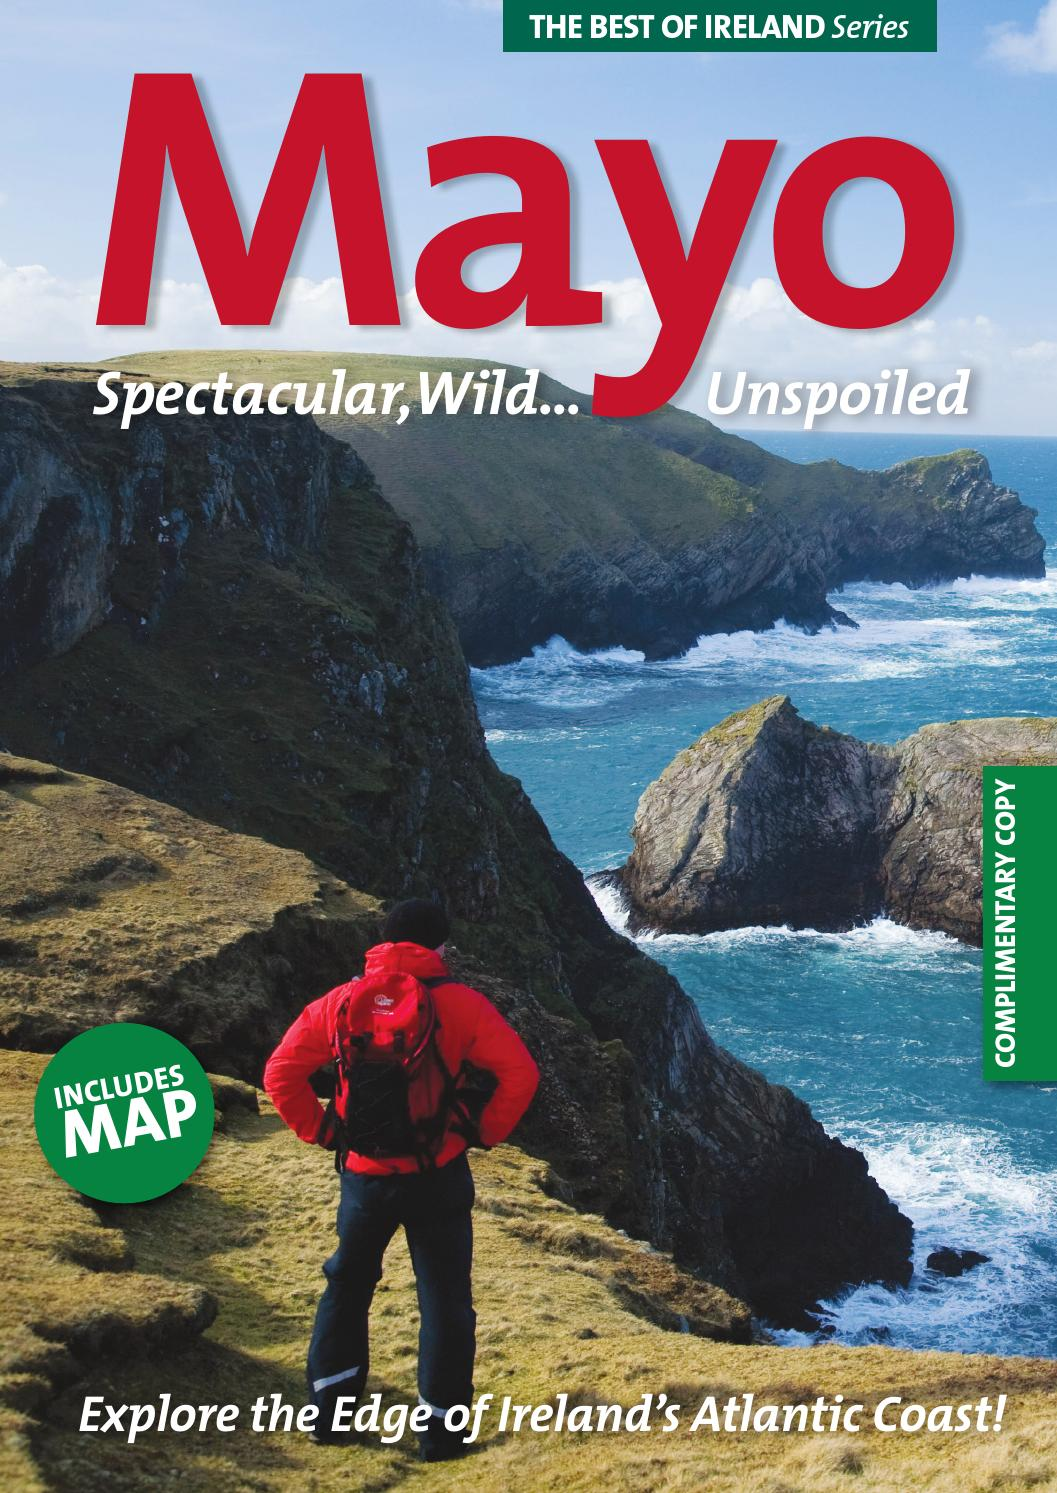 73f2d4276b1 Best Of Ireland Series - Mayo Guide 2015 by Southern - issuu